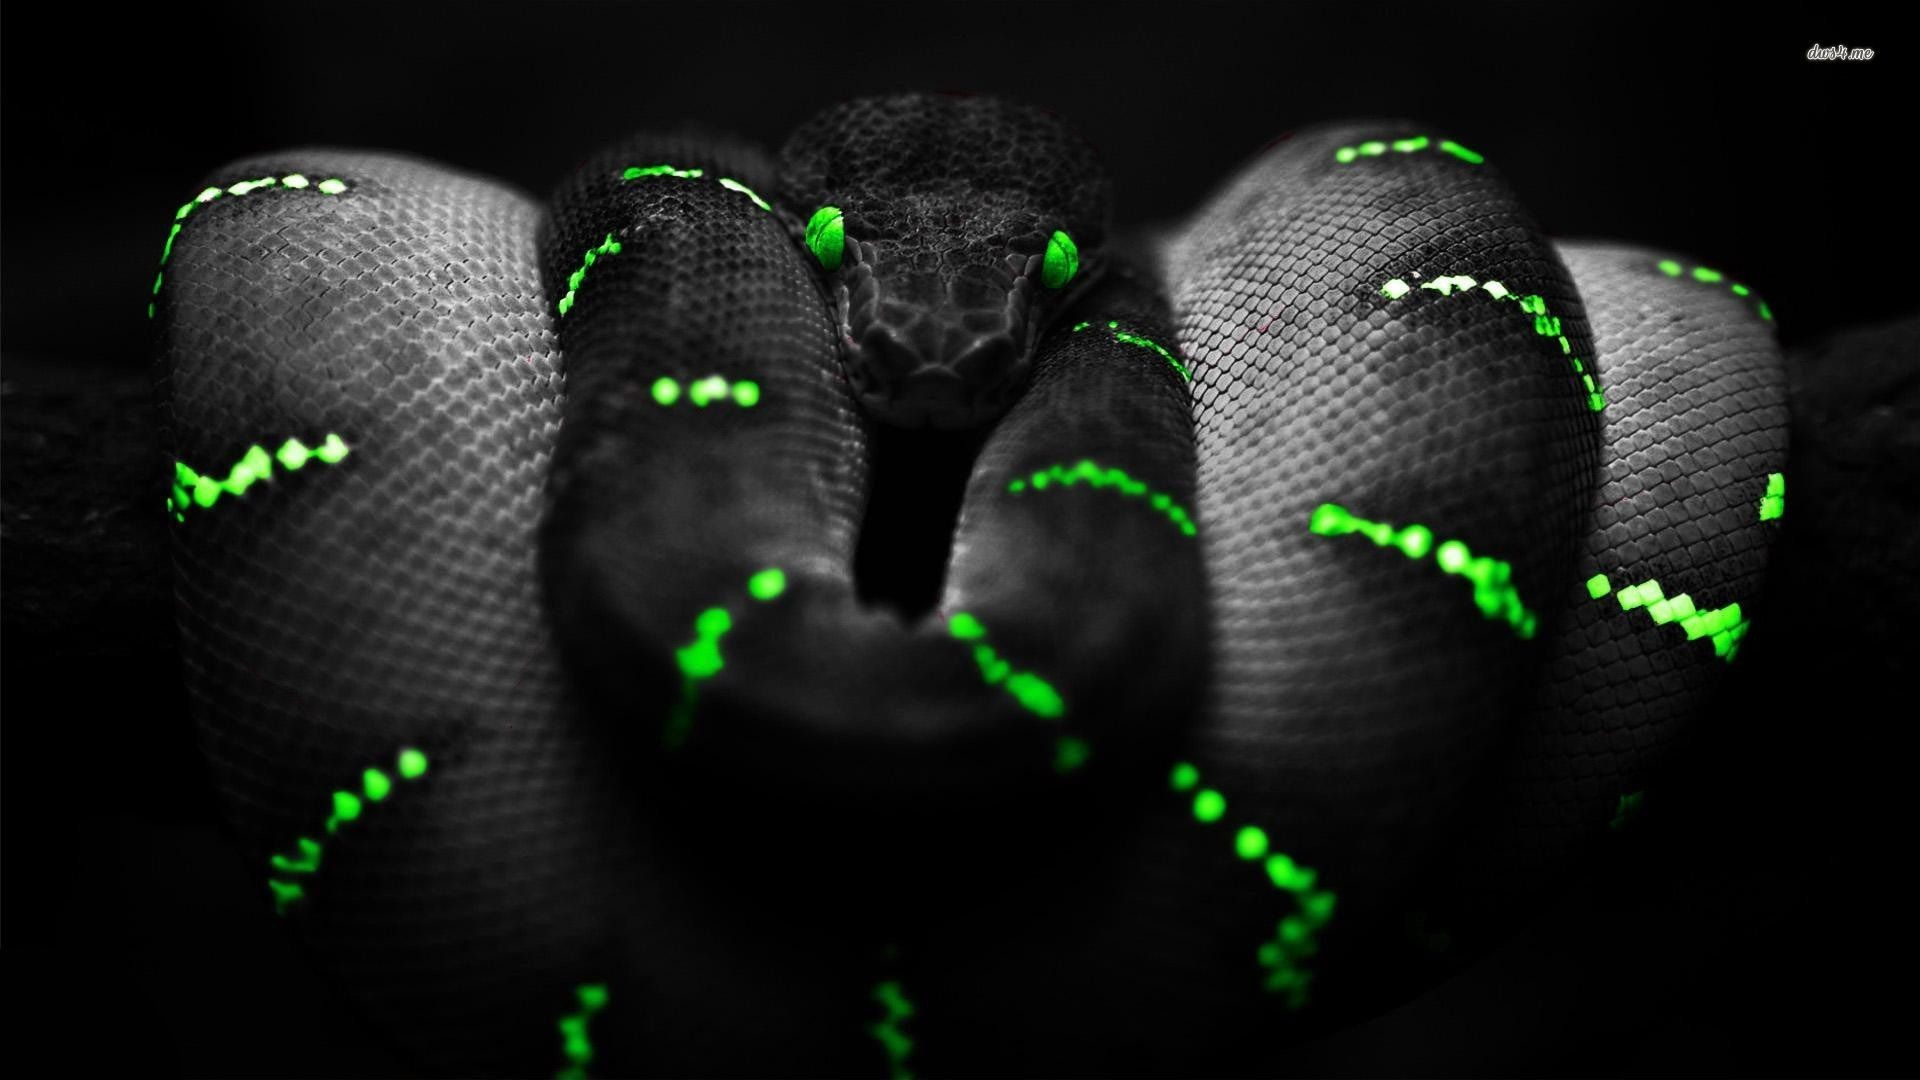 Res: 1920x1080, black-snakes-pictures-download.jpg